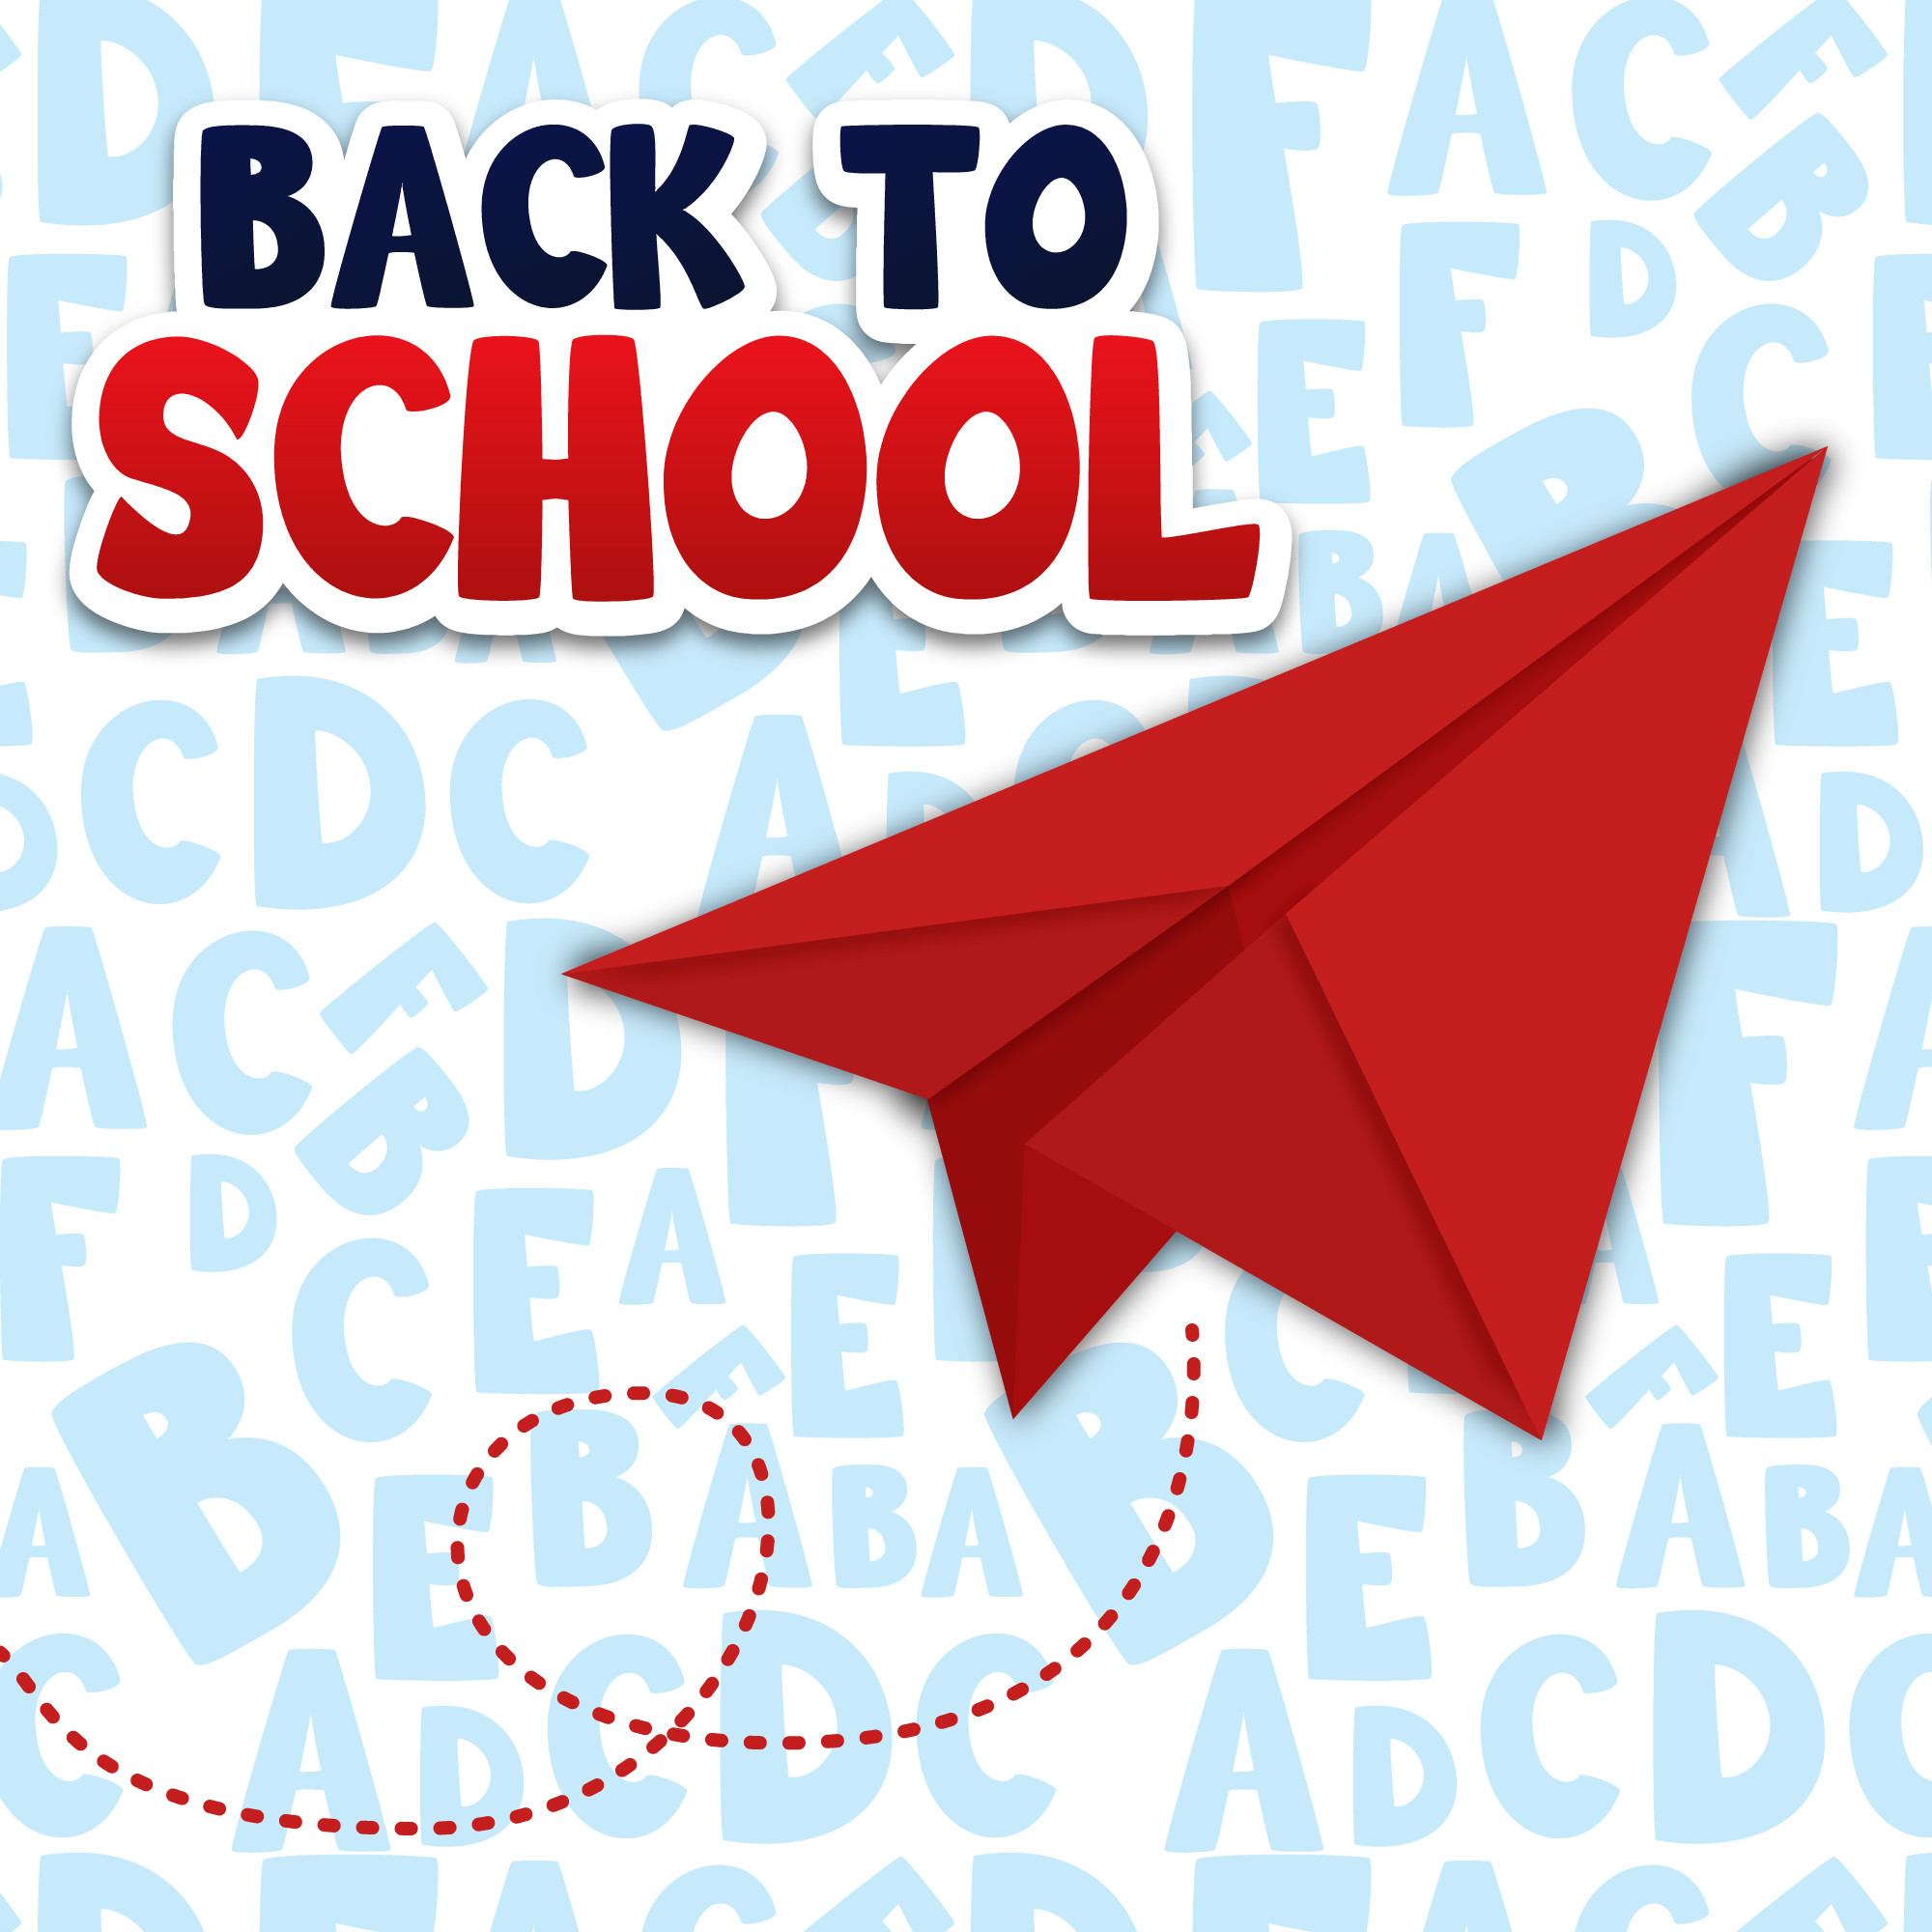 Back to school illustration with red paper airplane